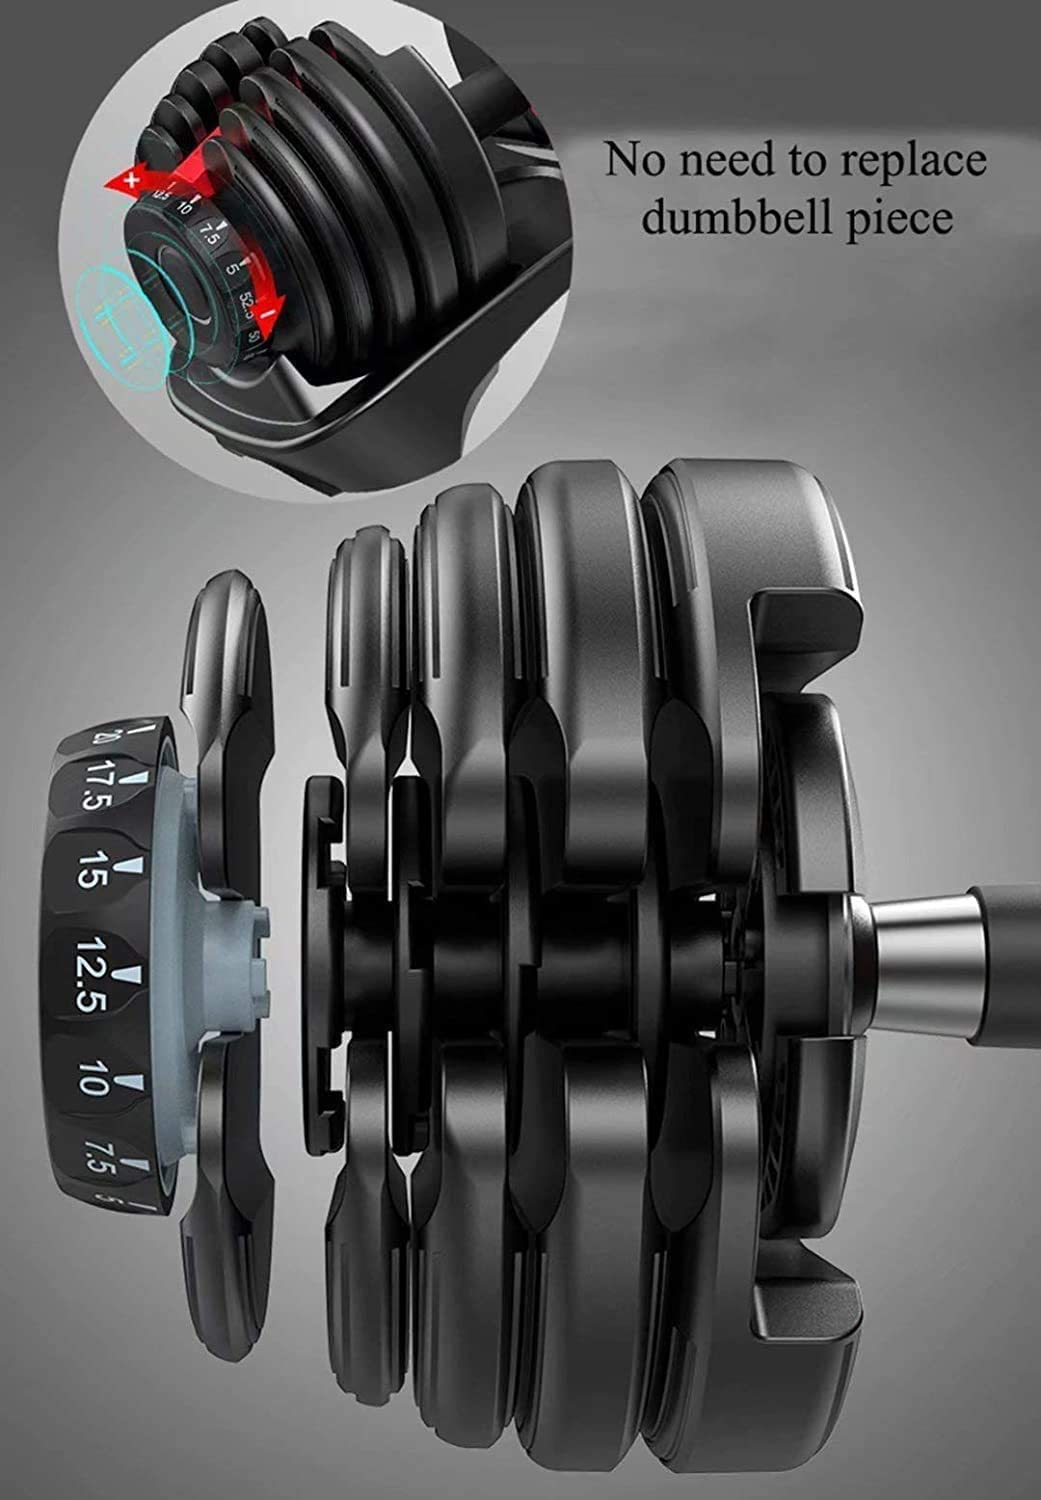 YPC Adjustable Dumbbells with Stand Set,Workout Exercise Barbell Gym Equipment Barbell for Men and Women Home Fitness Weight Set Gym Workout Exercise Training